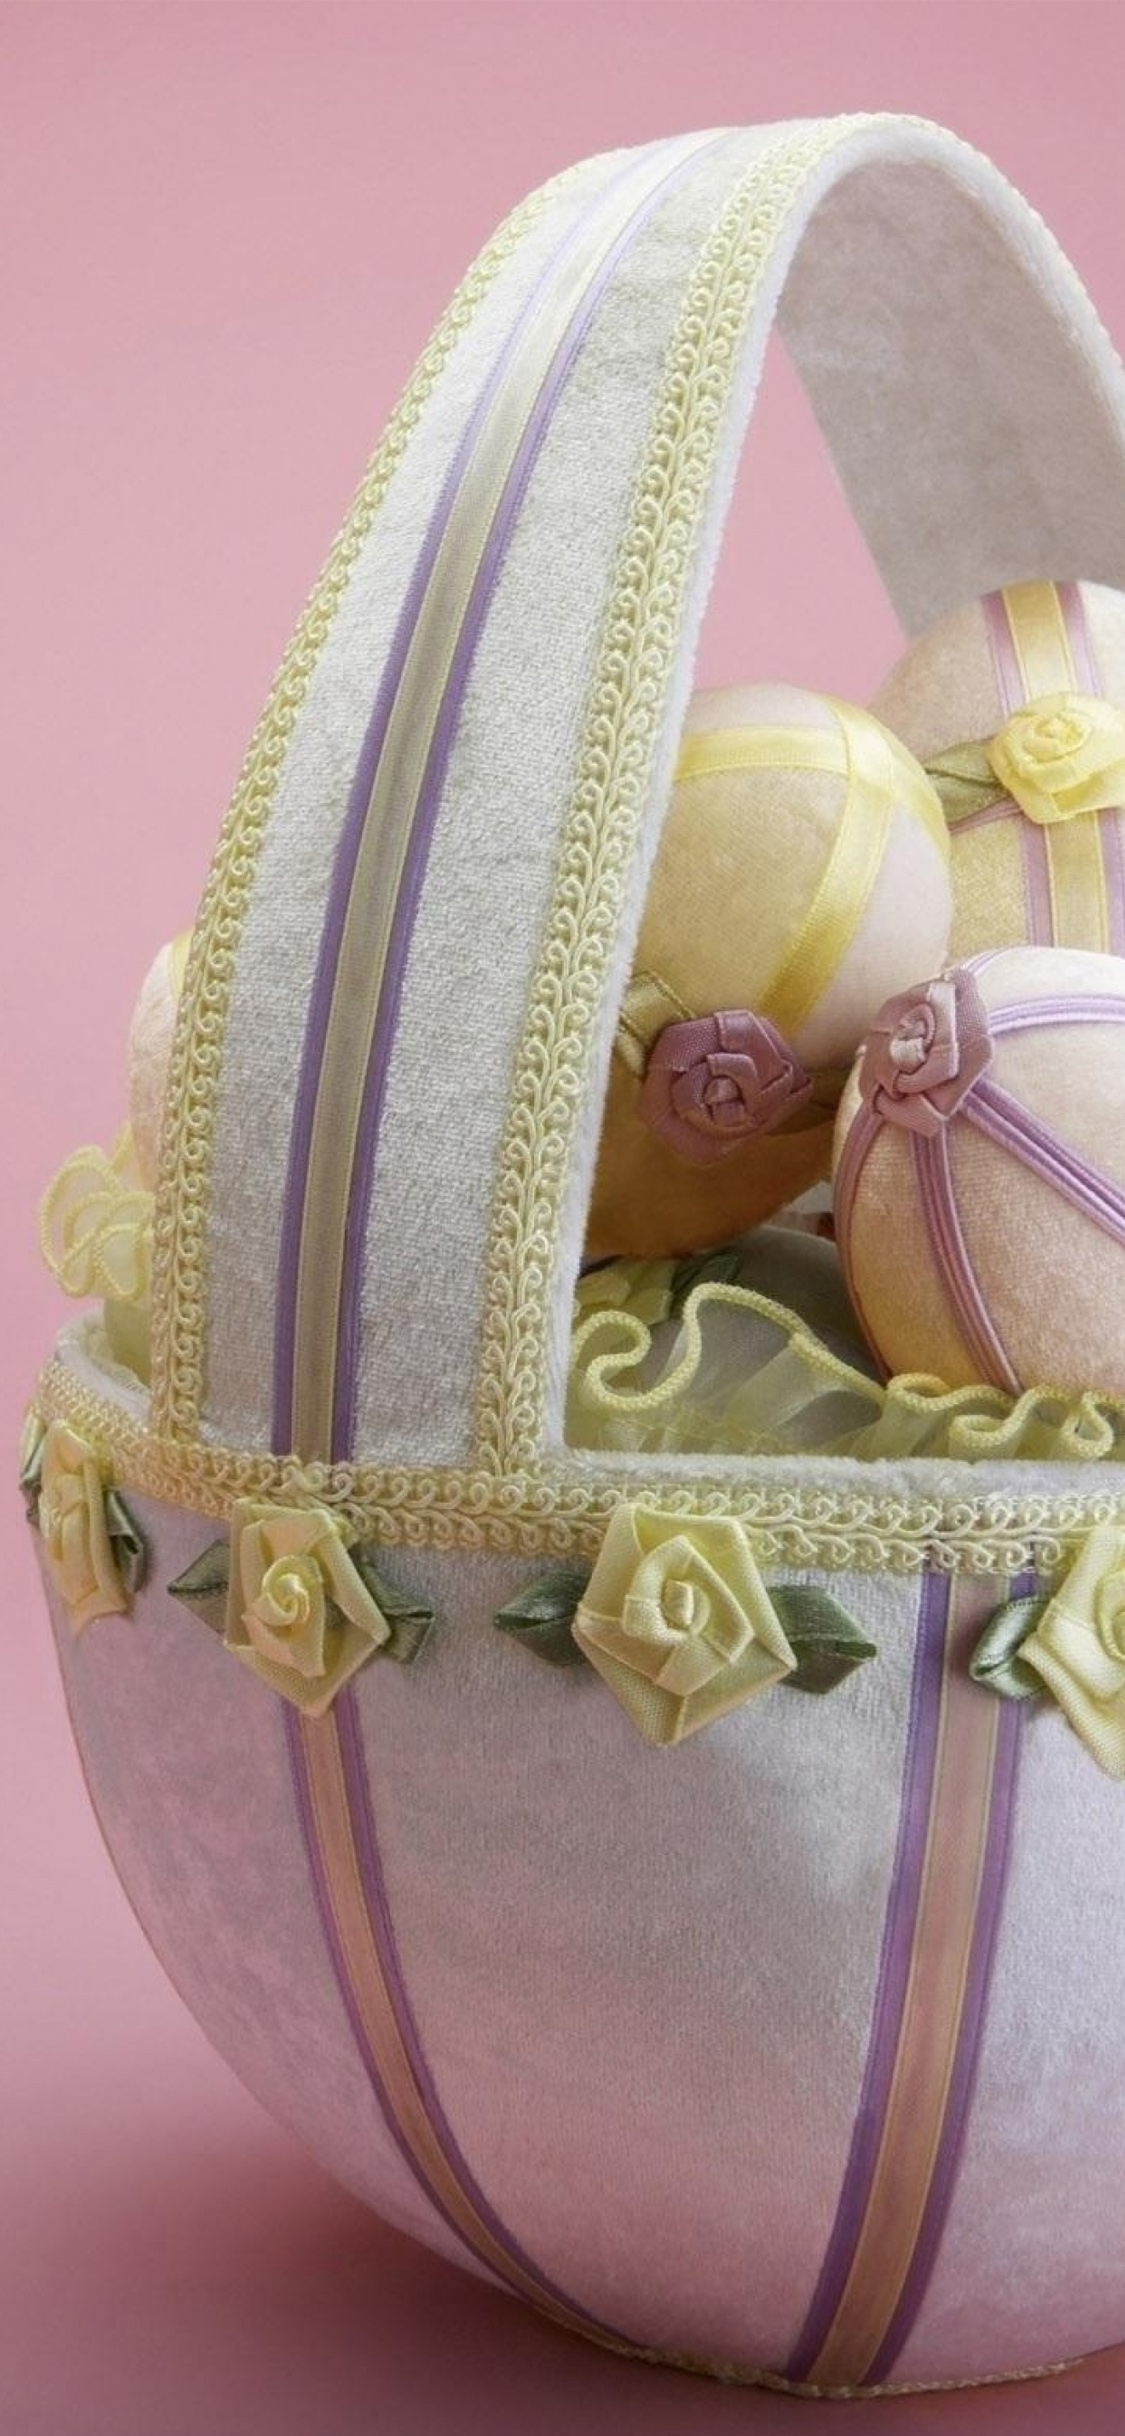 Easter Holiday Basket Eggs Flowers Beauty Background Iphone